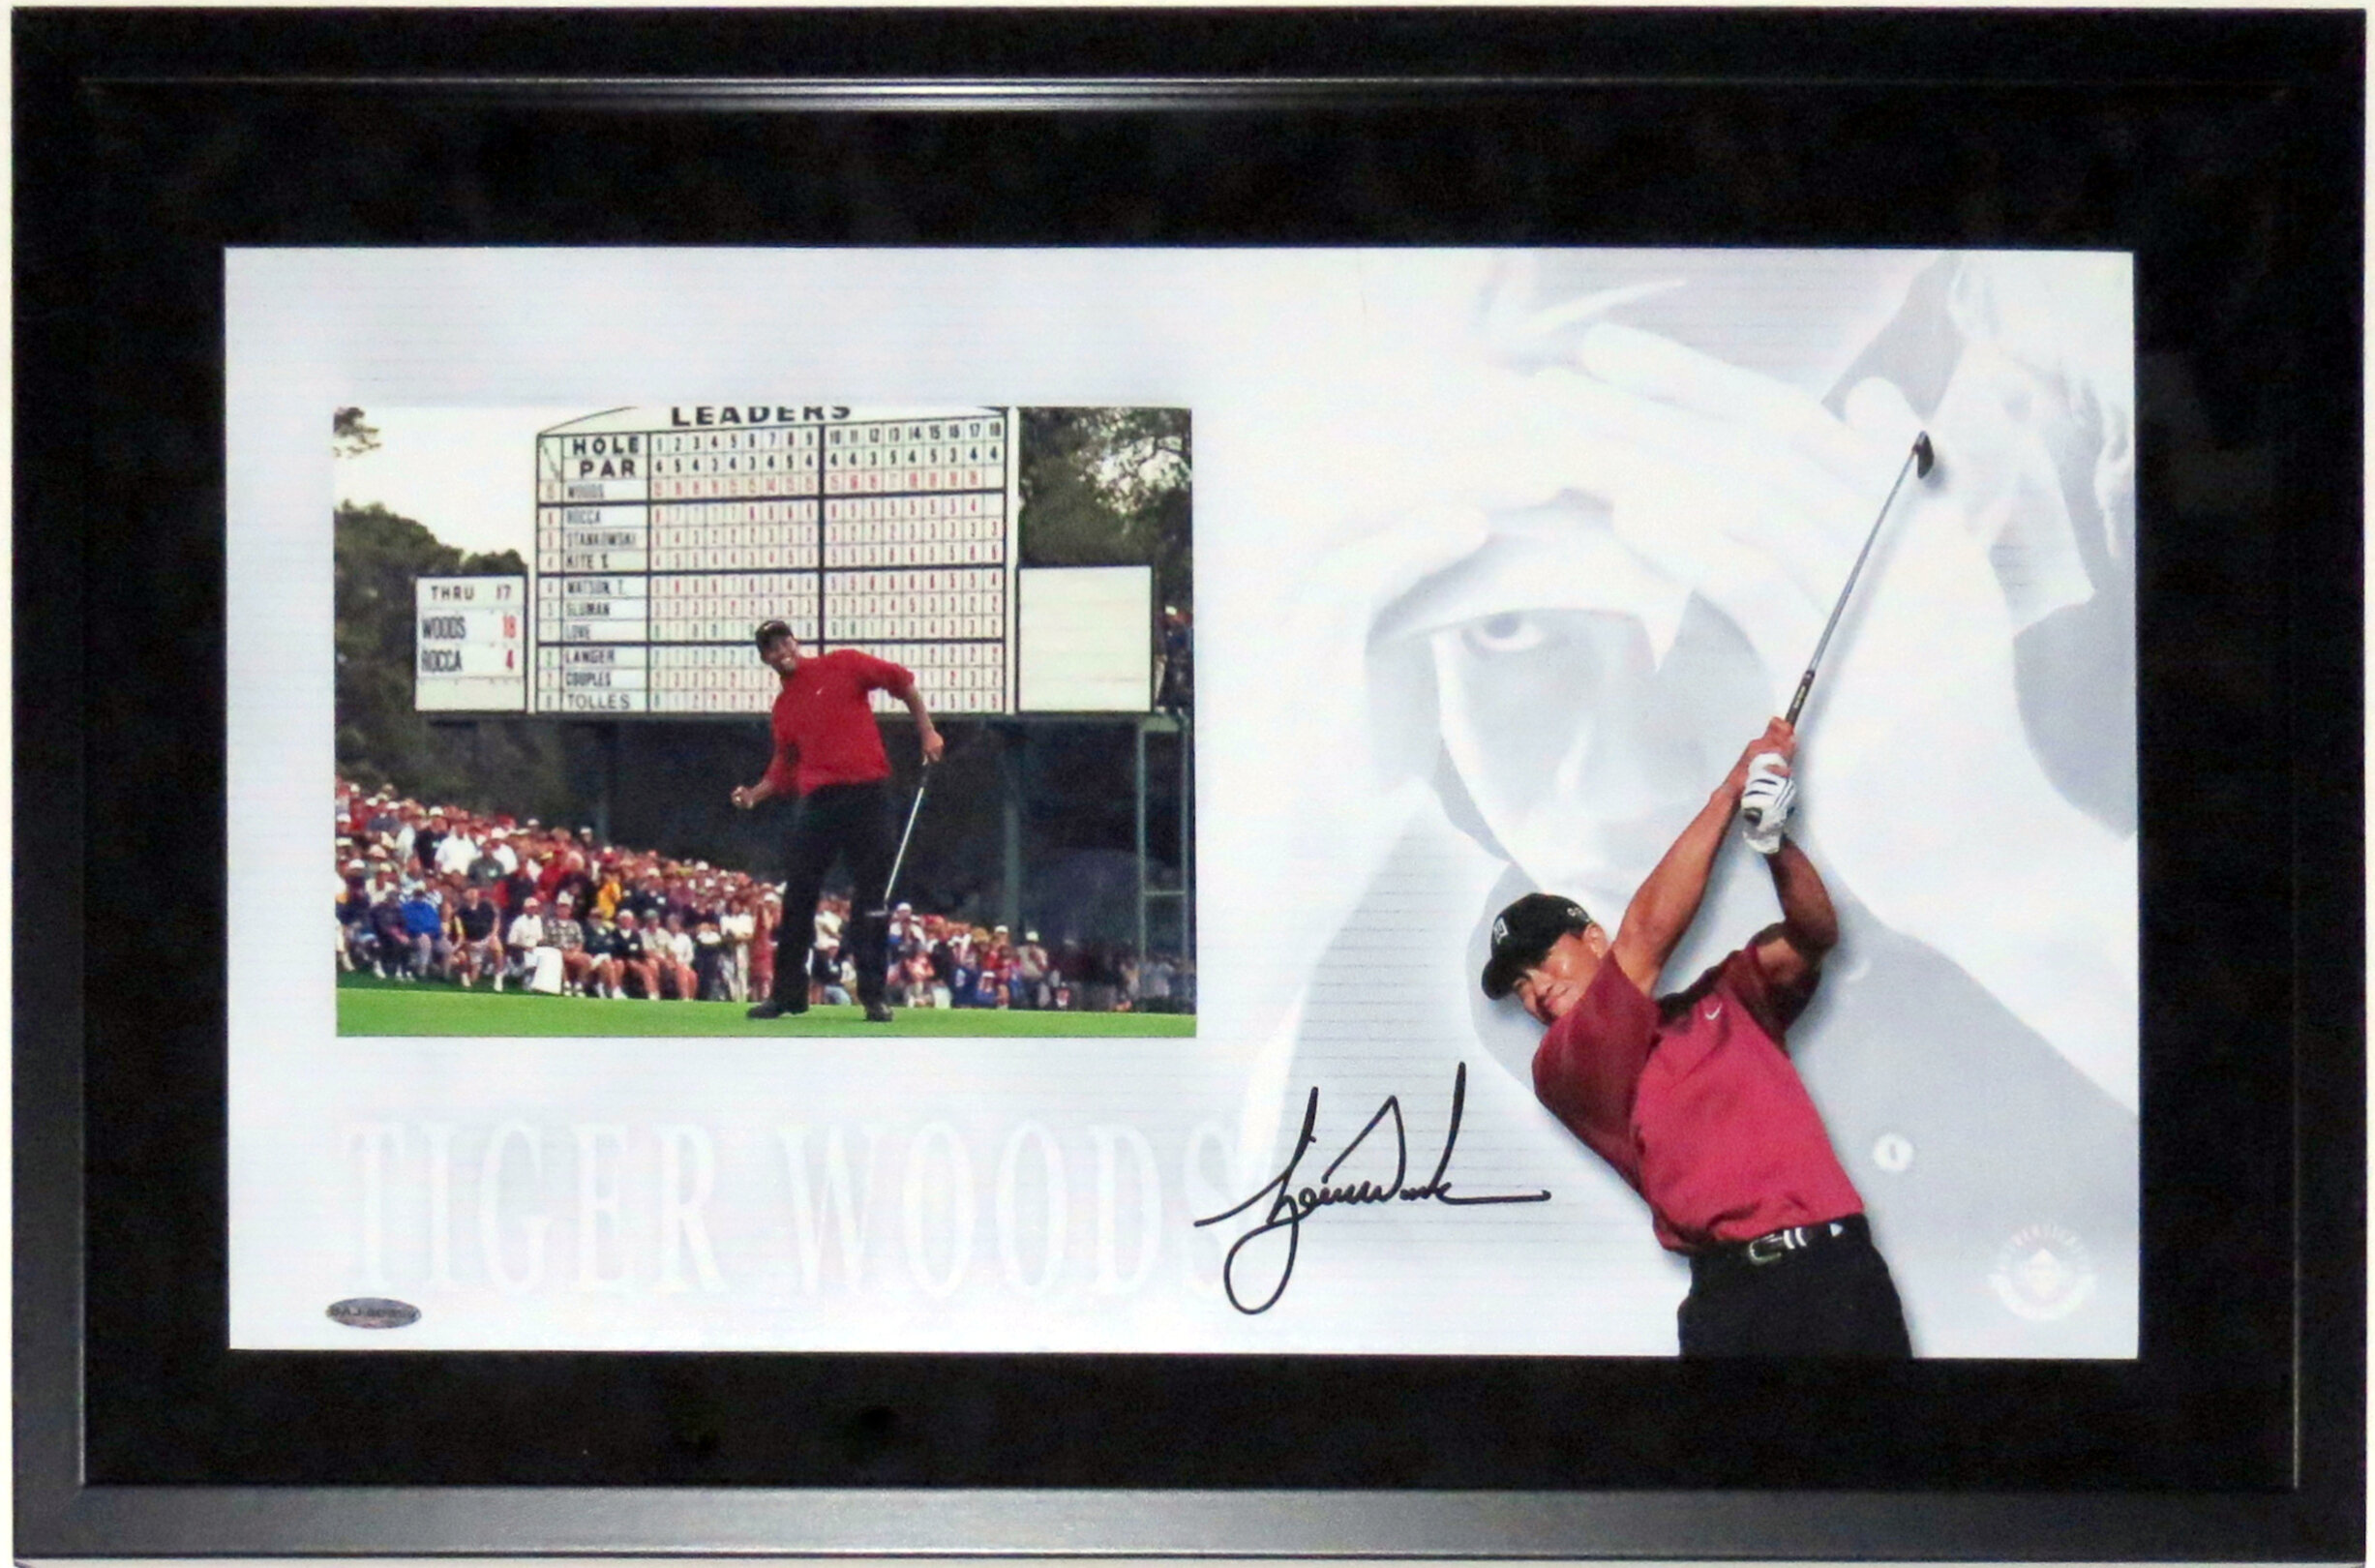 Tiger Woods Autographed 1997 Masters Focus Photo Compilation - Upper DEck Authenticated UDA COA - Professionally Framed Shadowbox